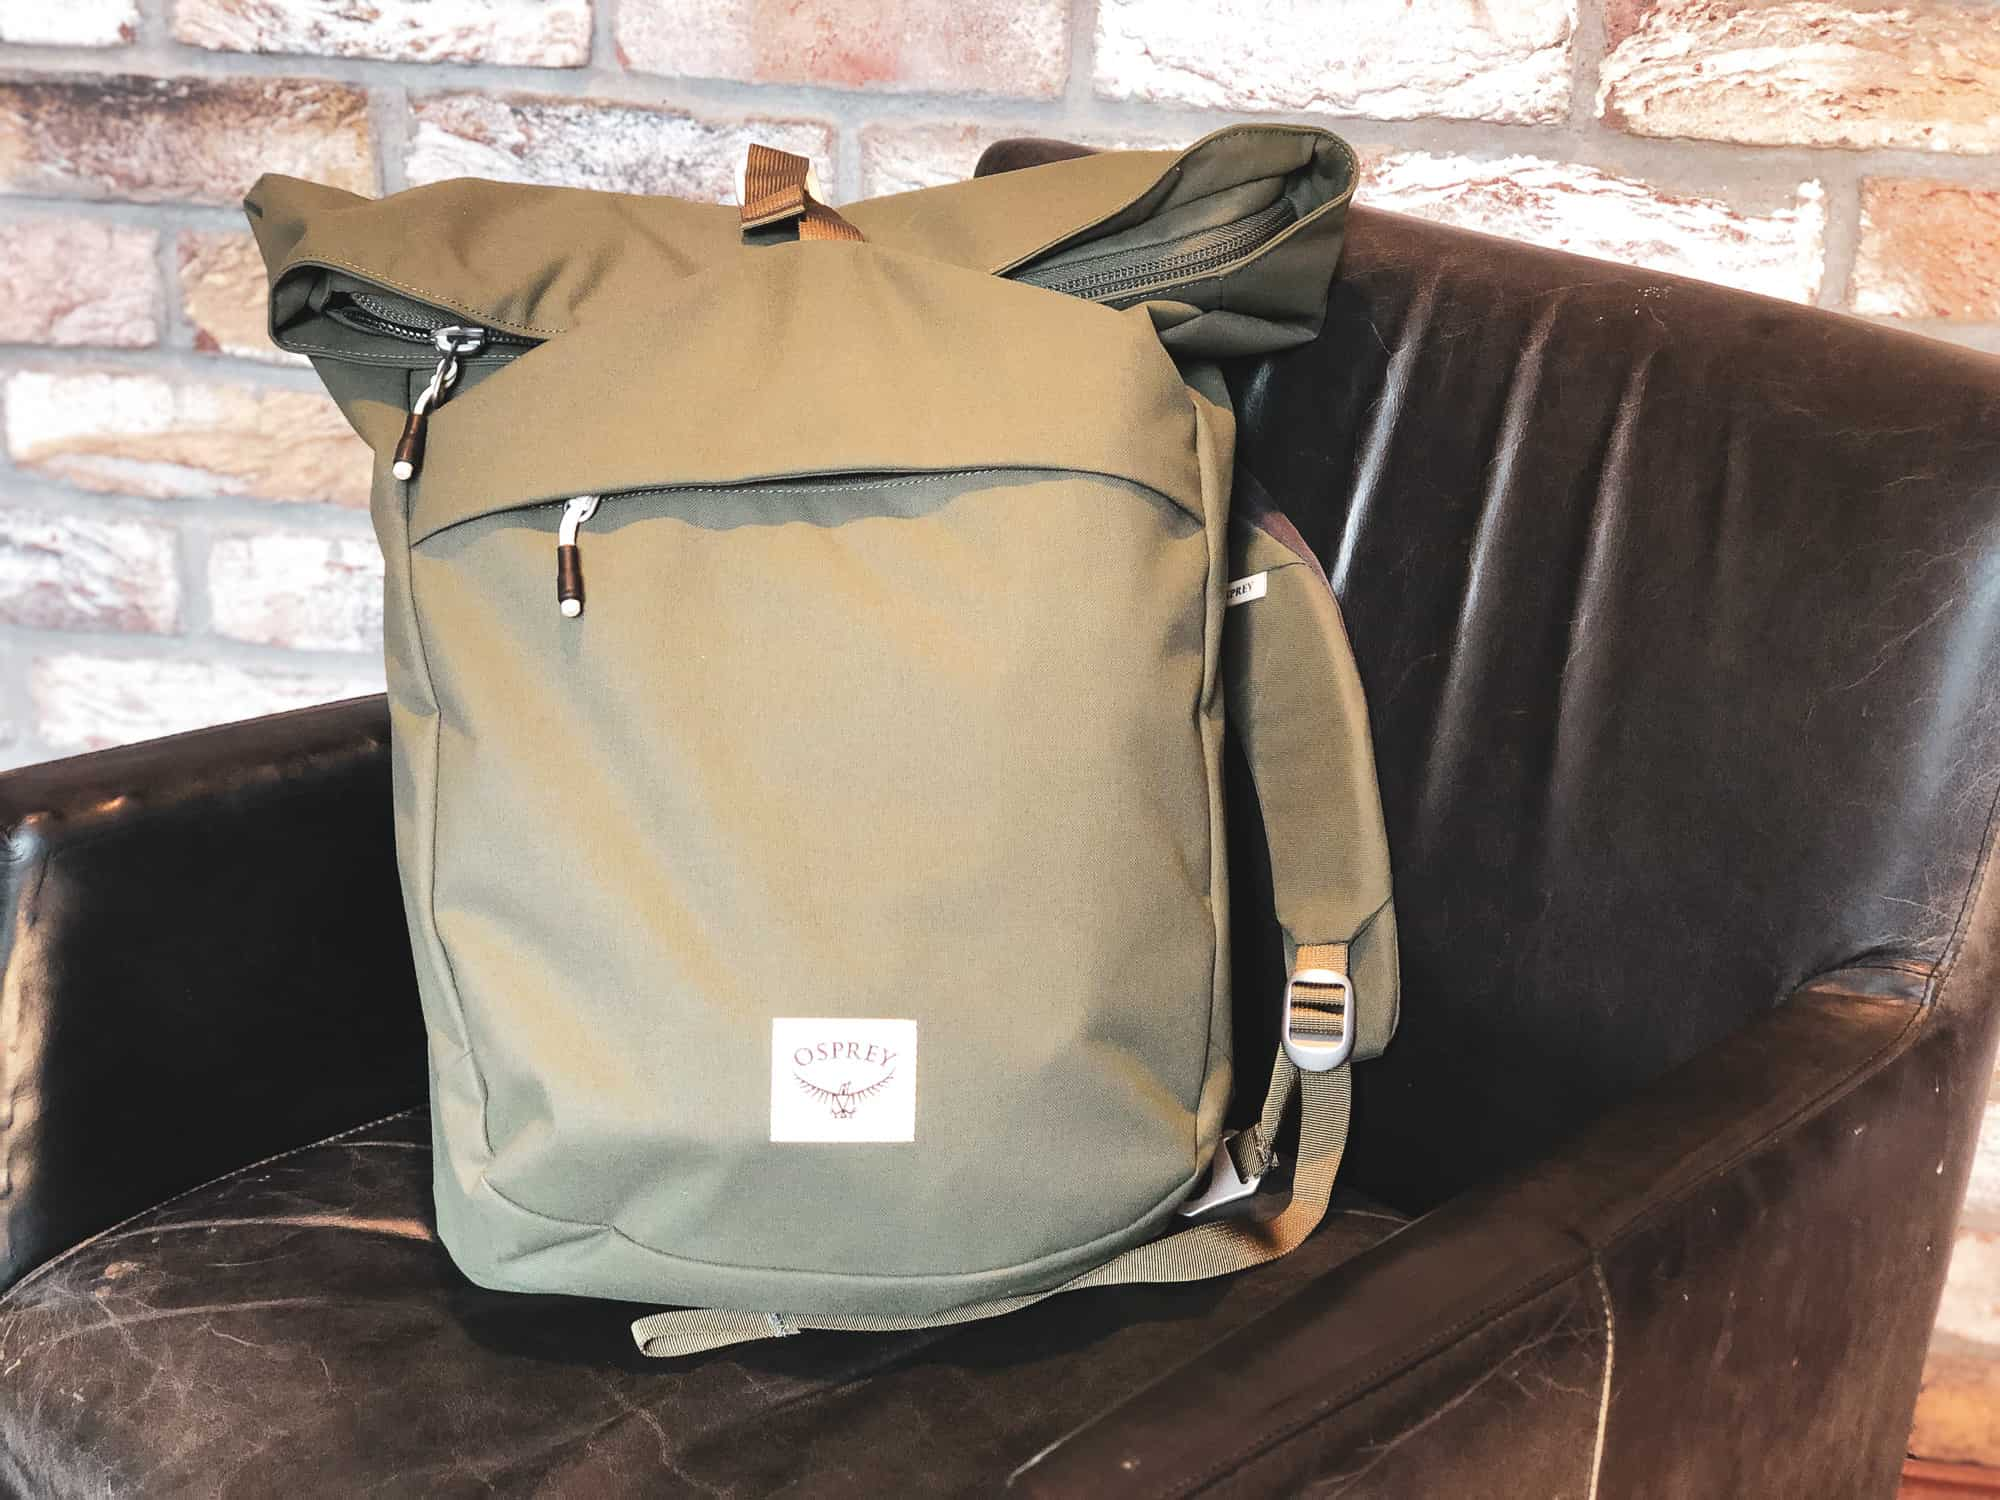 Arcane Osprey Tote Bag Review Front Image